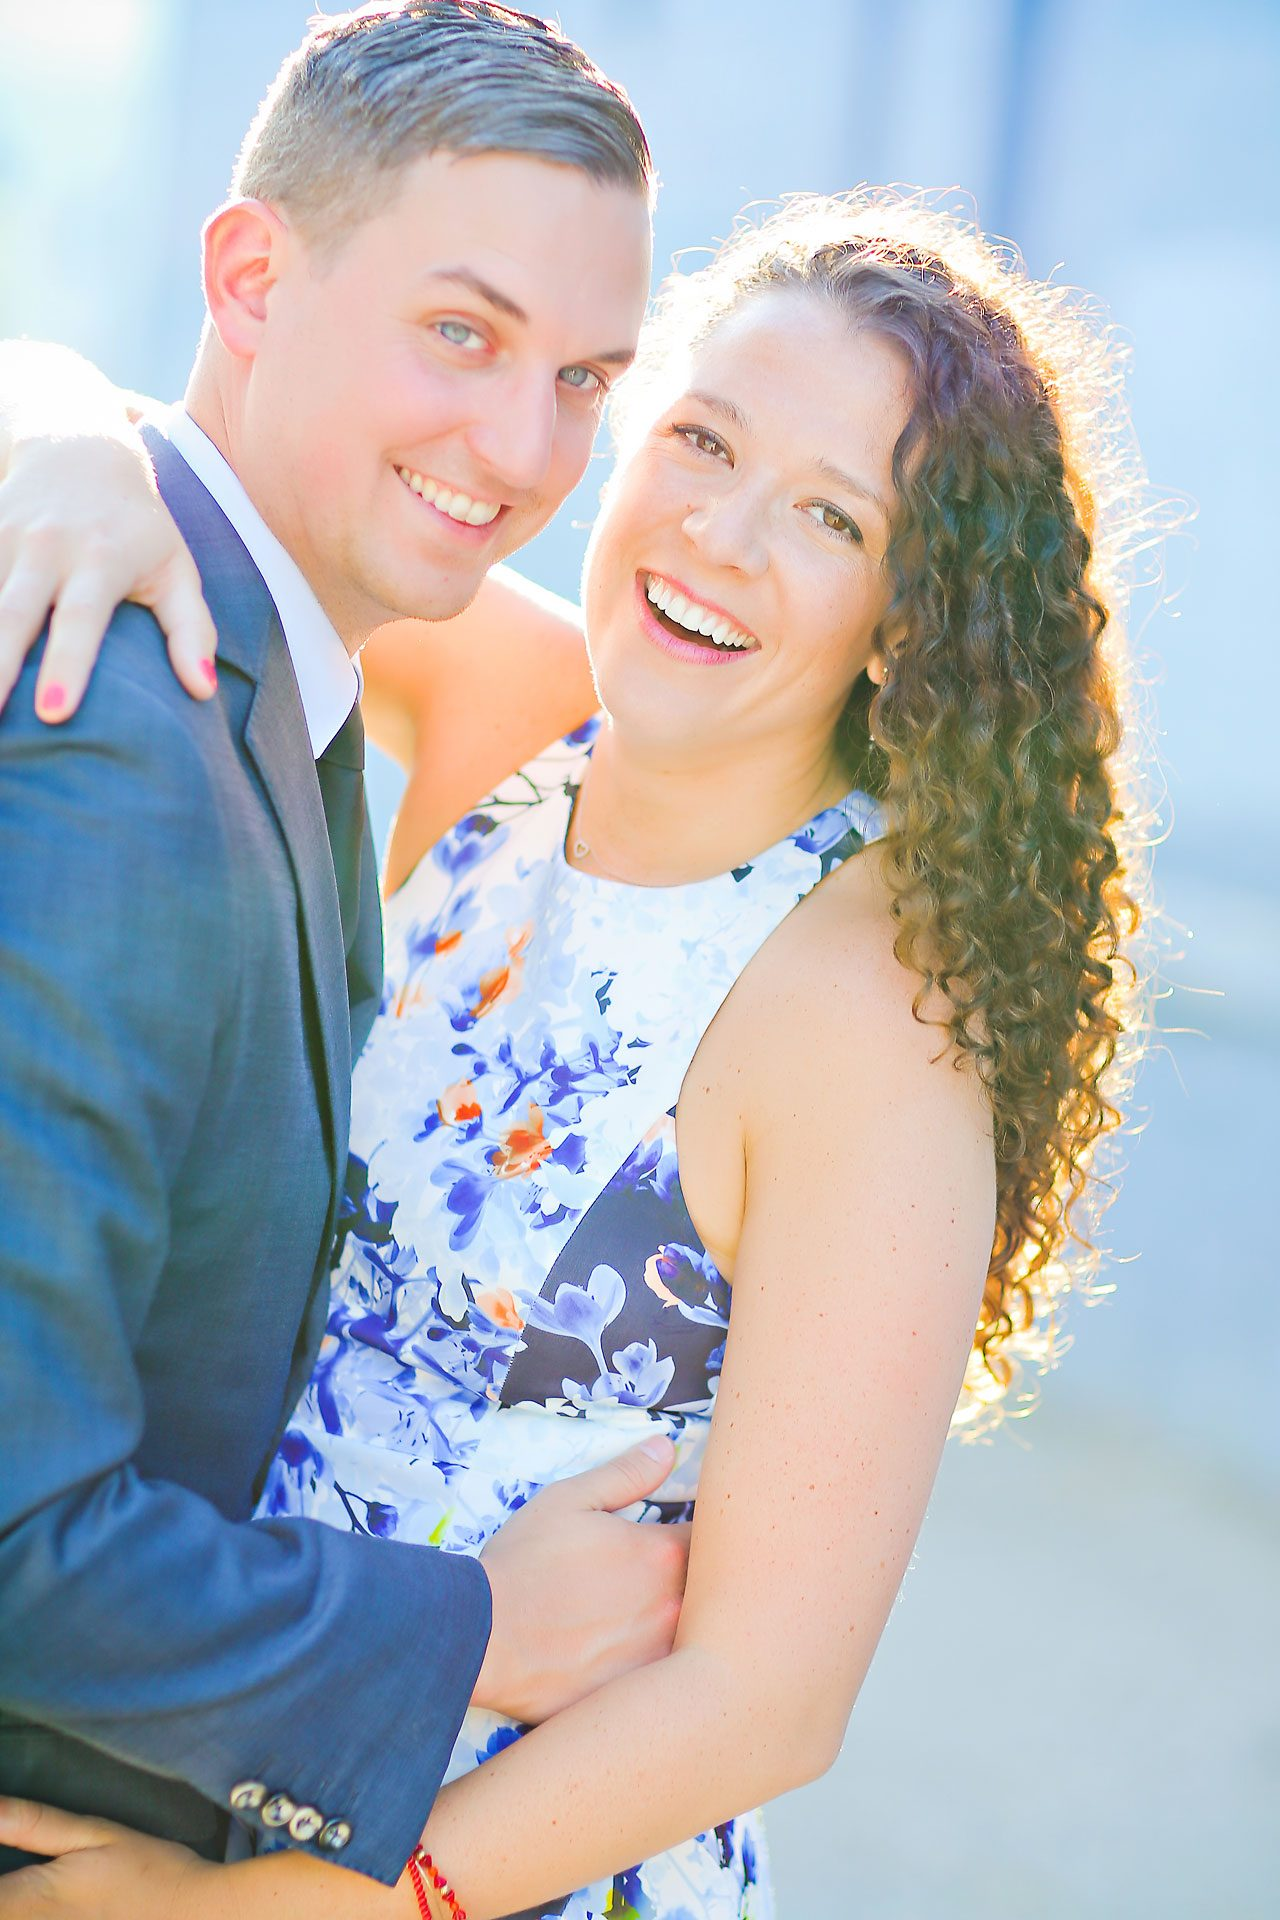 Liz Eric Indianapolis Engagement Session 070